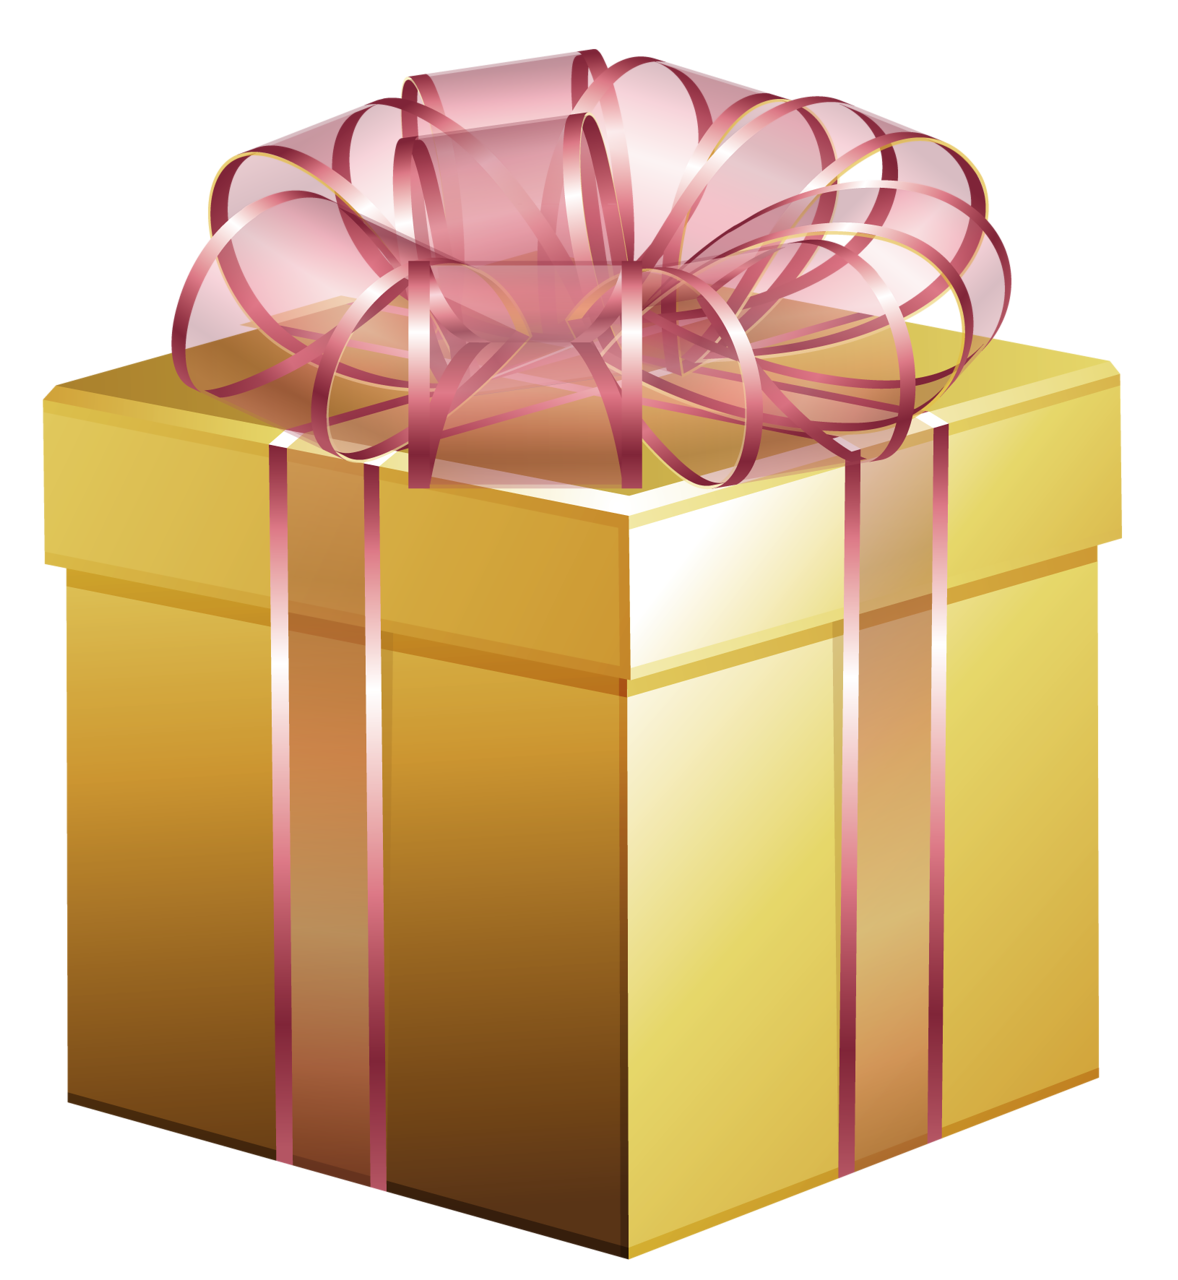 Golden Gift Box PNG Image